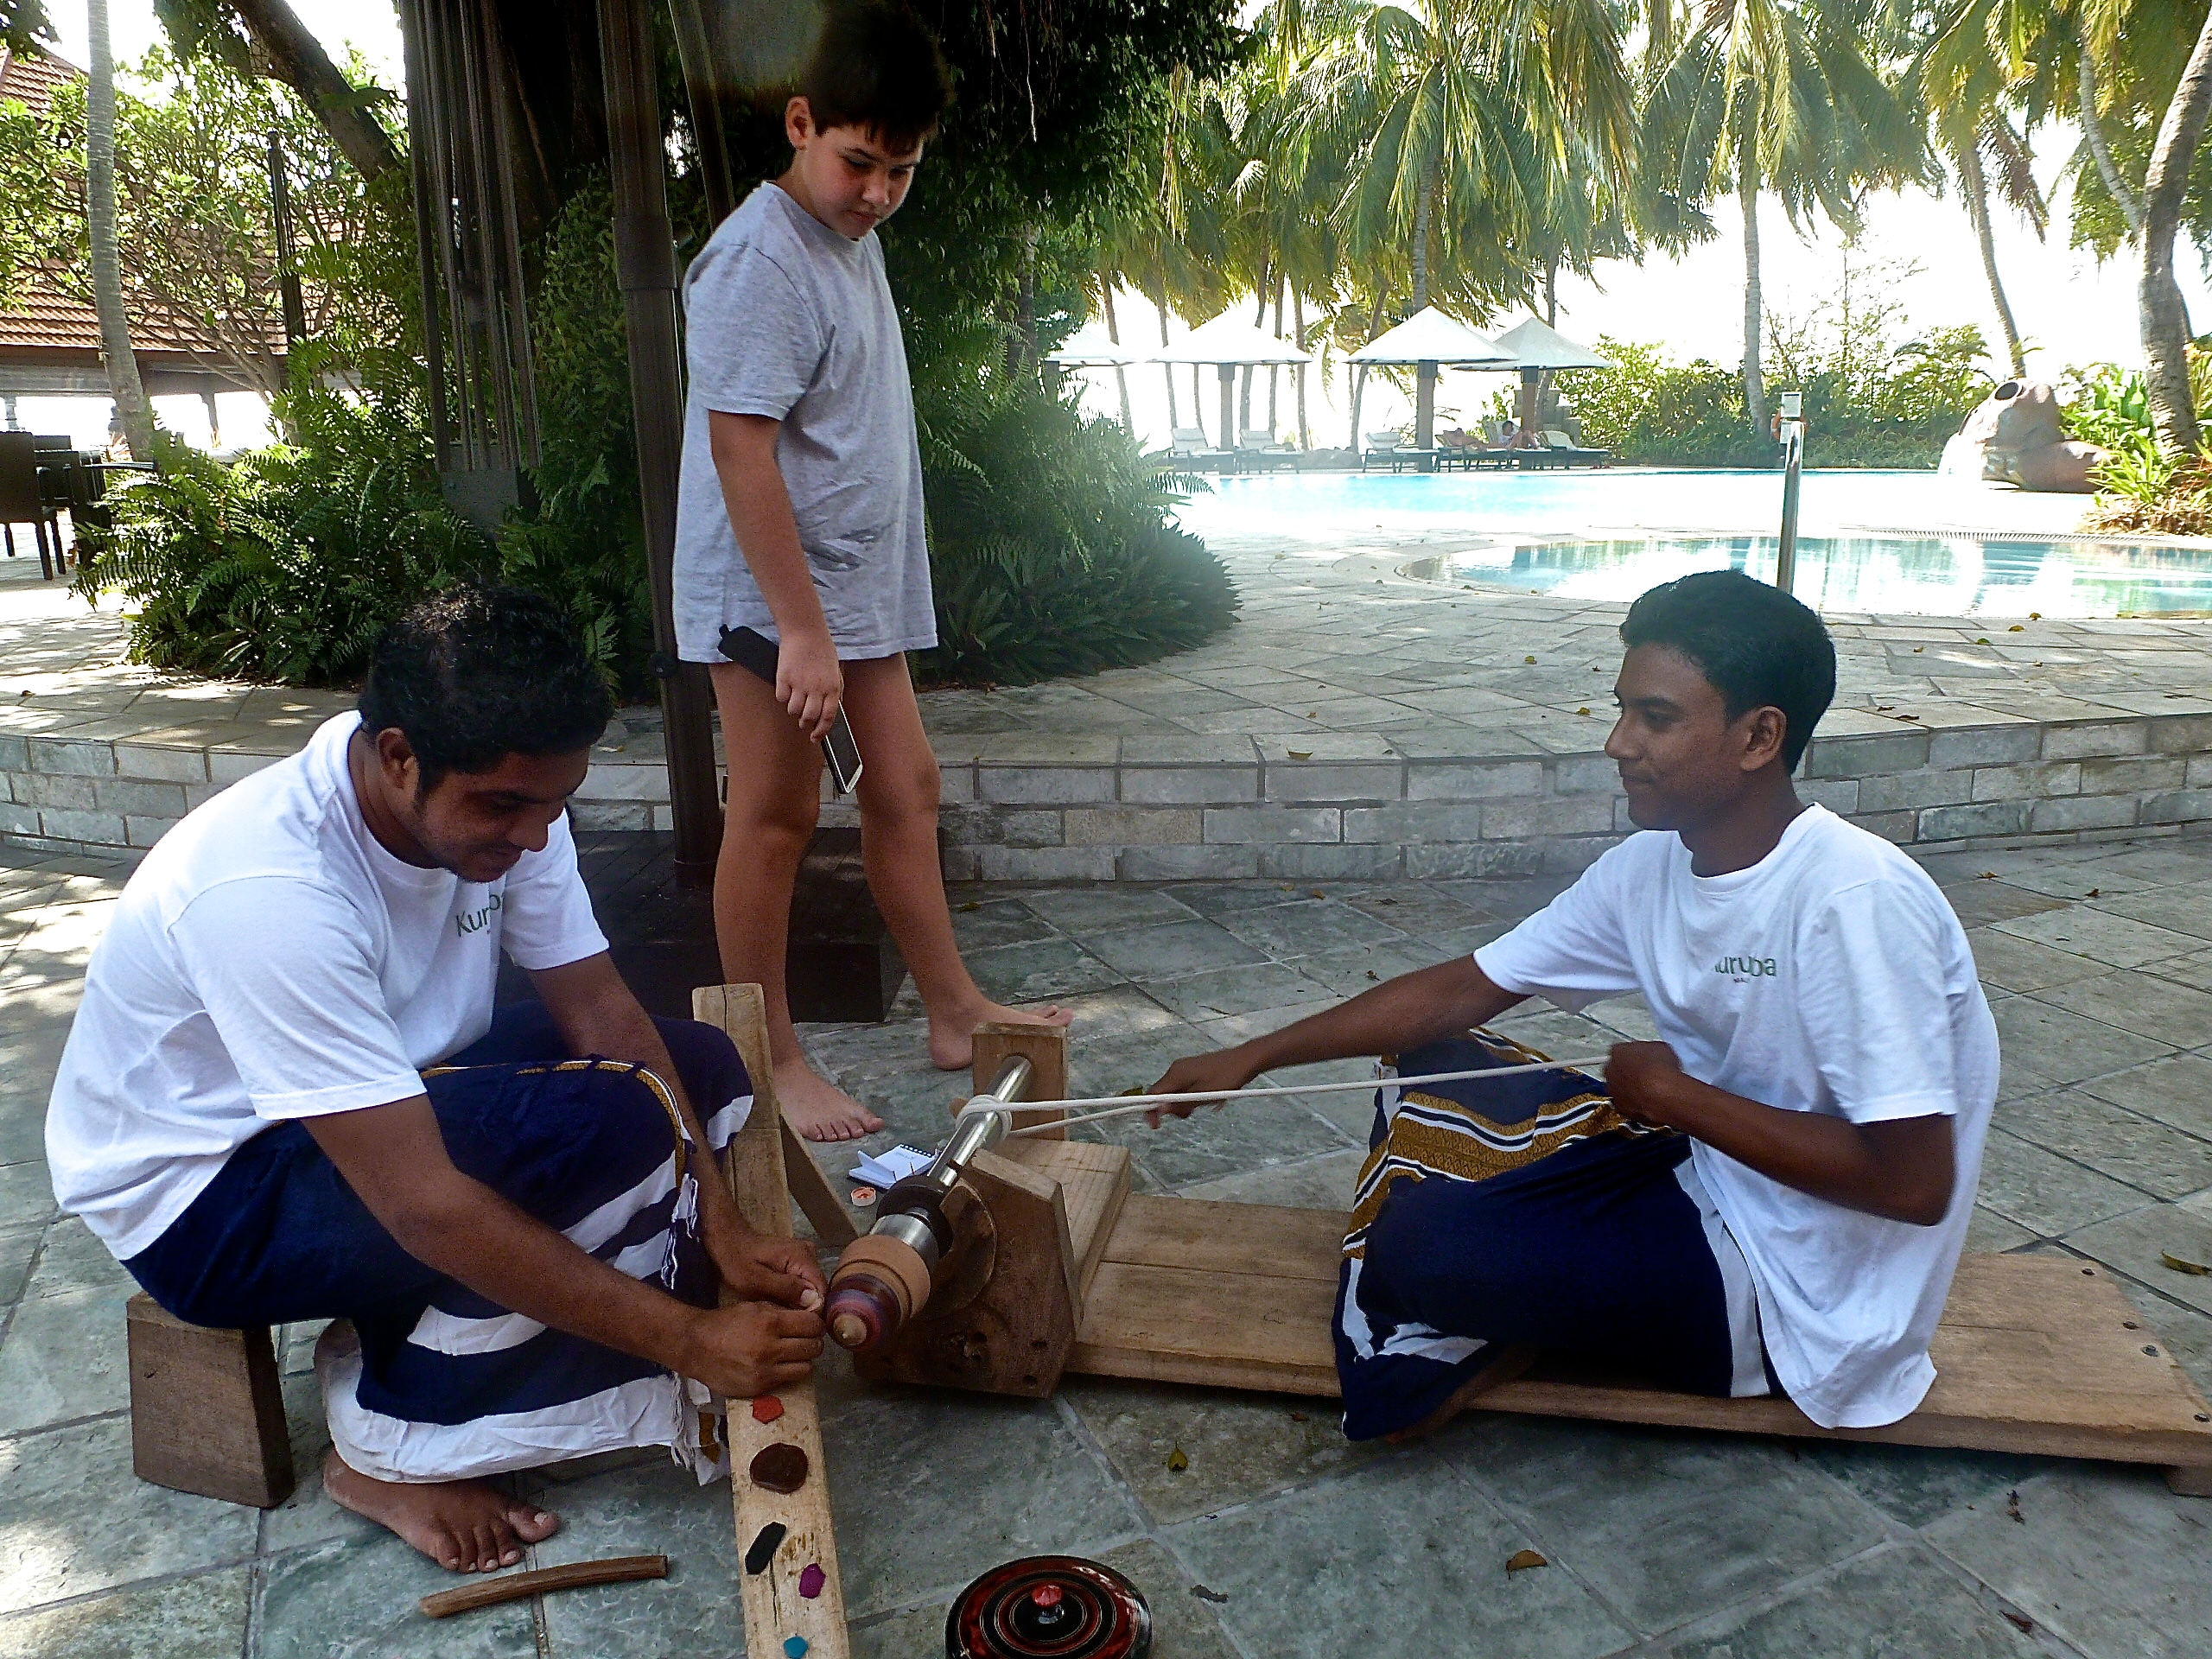 Local craftsmen in the Maldives